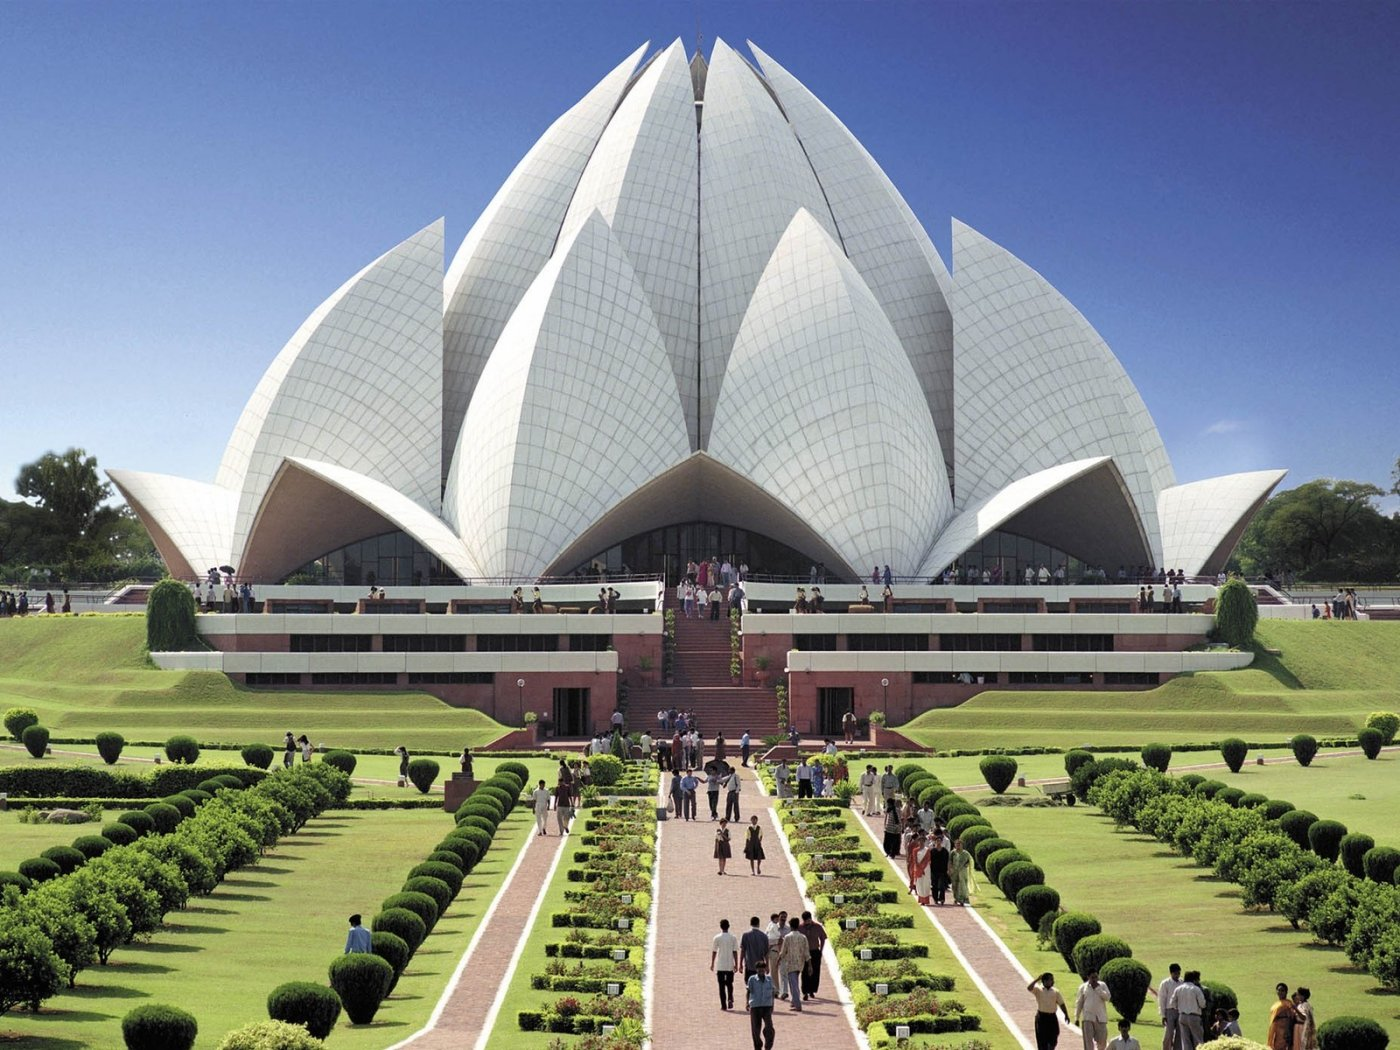 Modern Architecture Wallpaper modern architecture lotus temple hd widescreen 303287 wallpaper